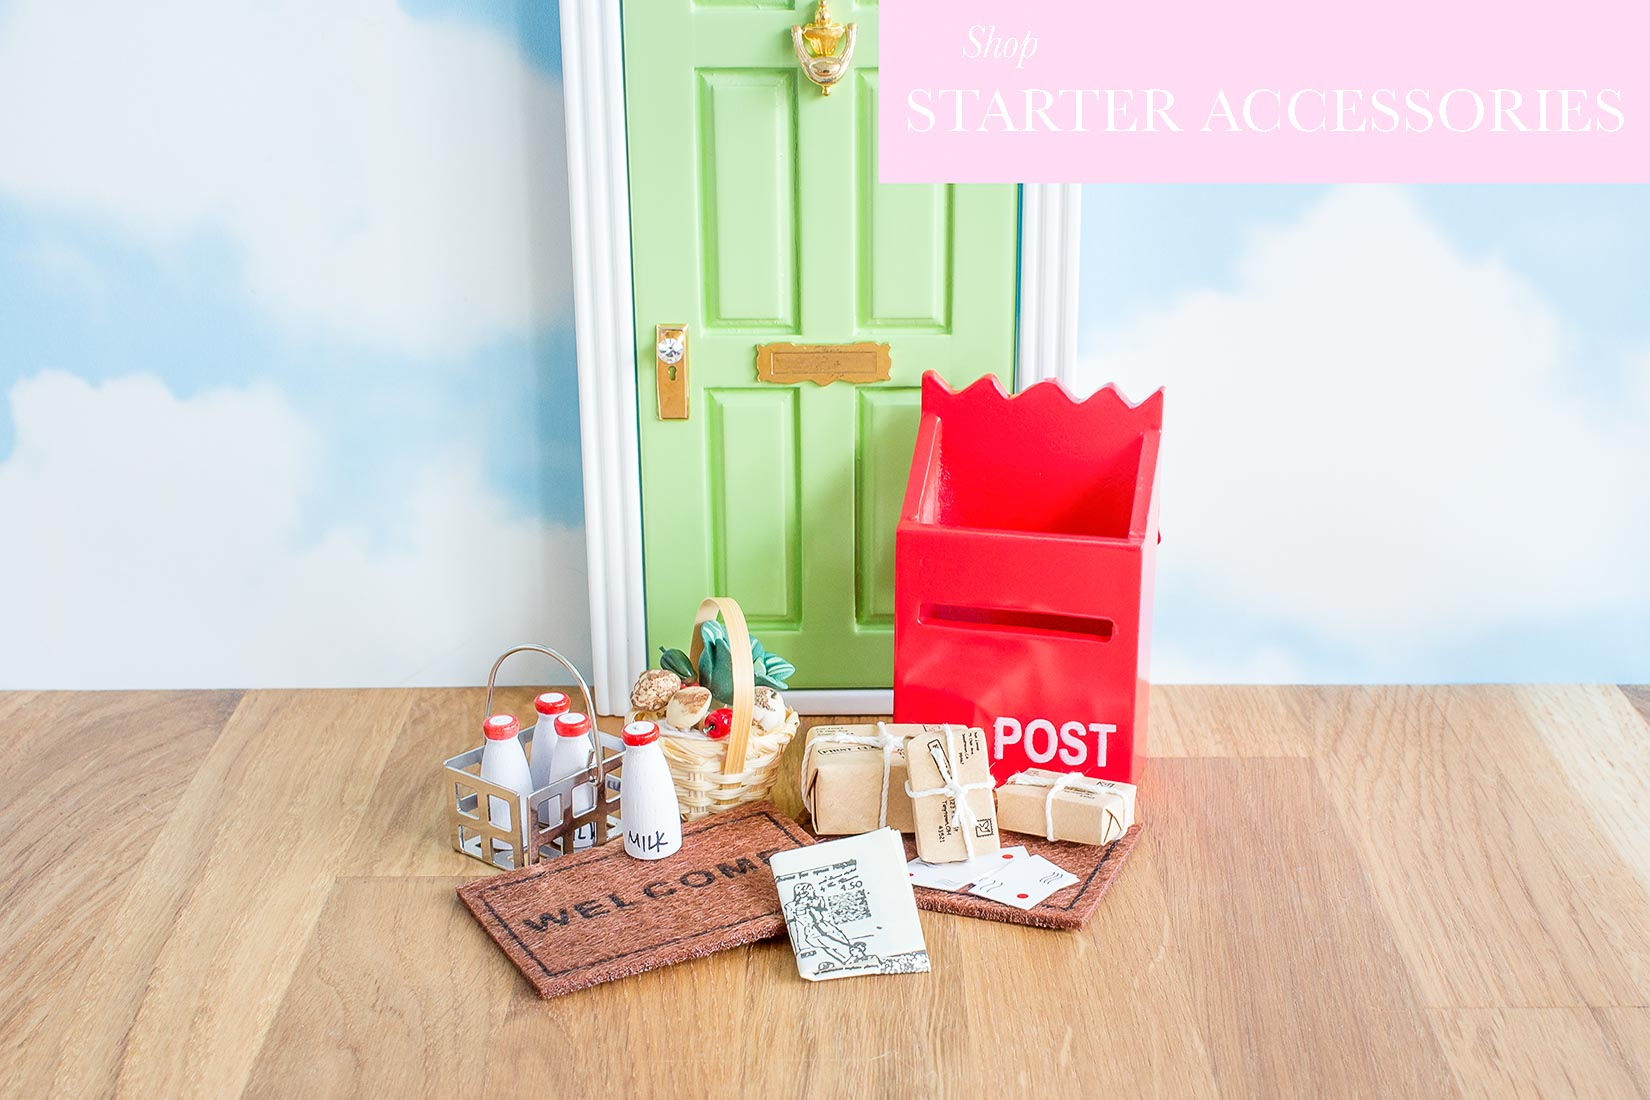 fairy door accessories to get you started